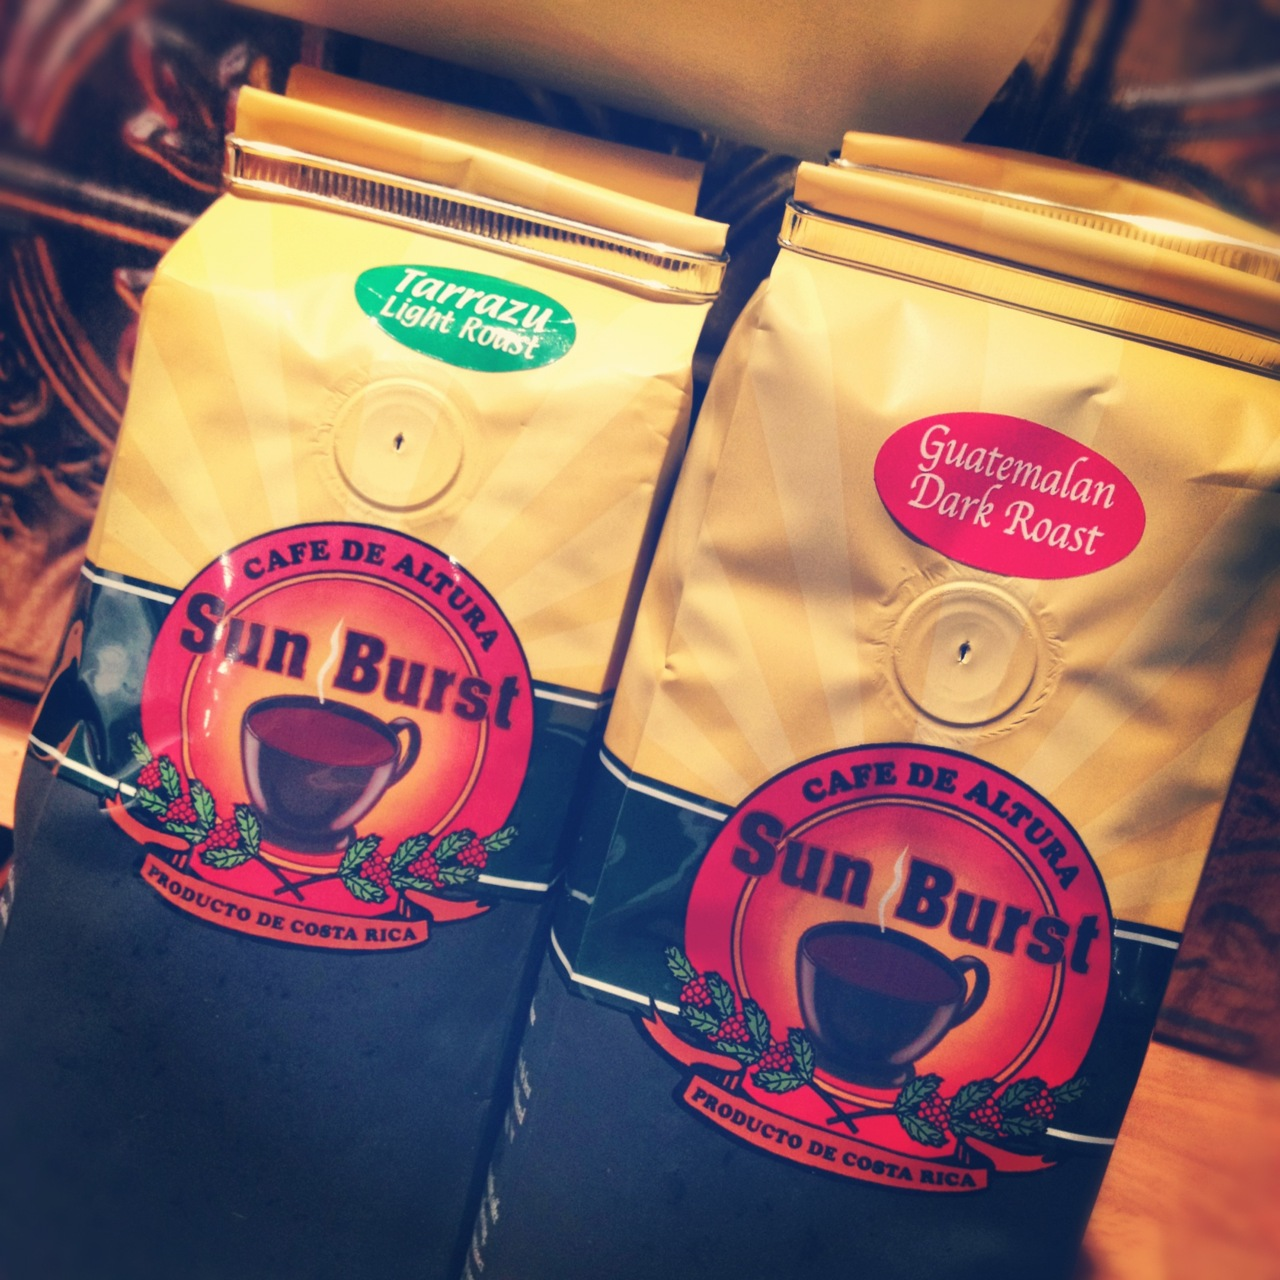 The best coffee ever.